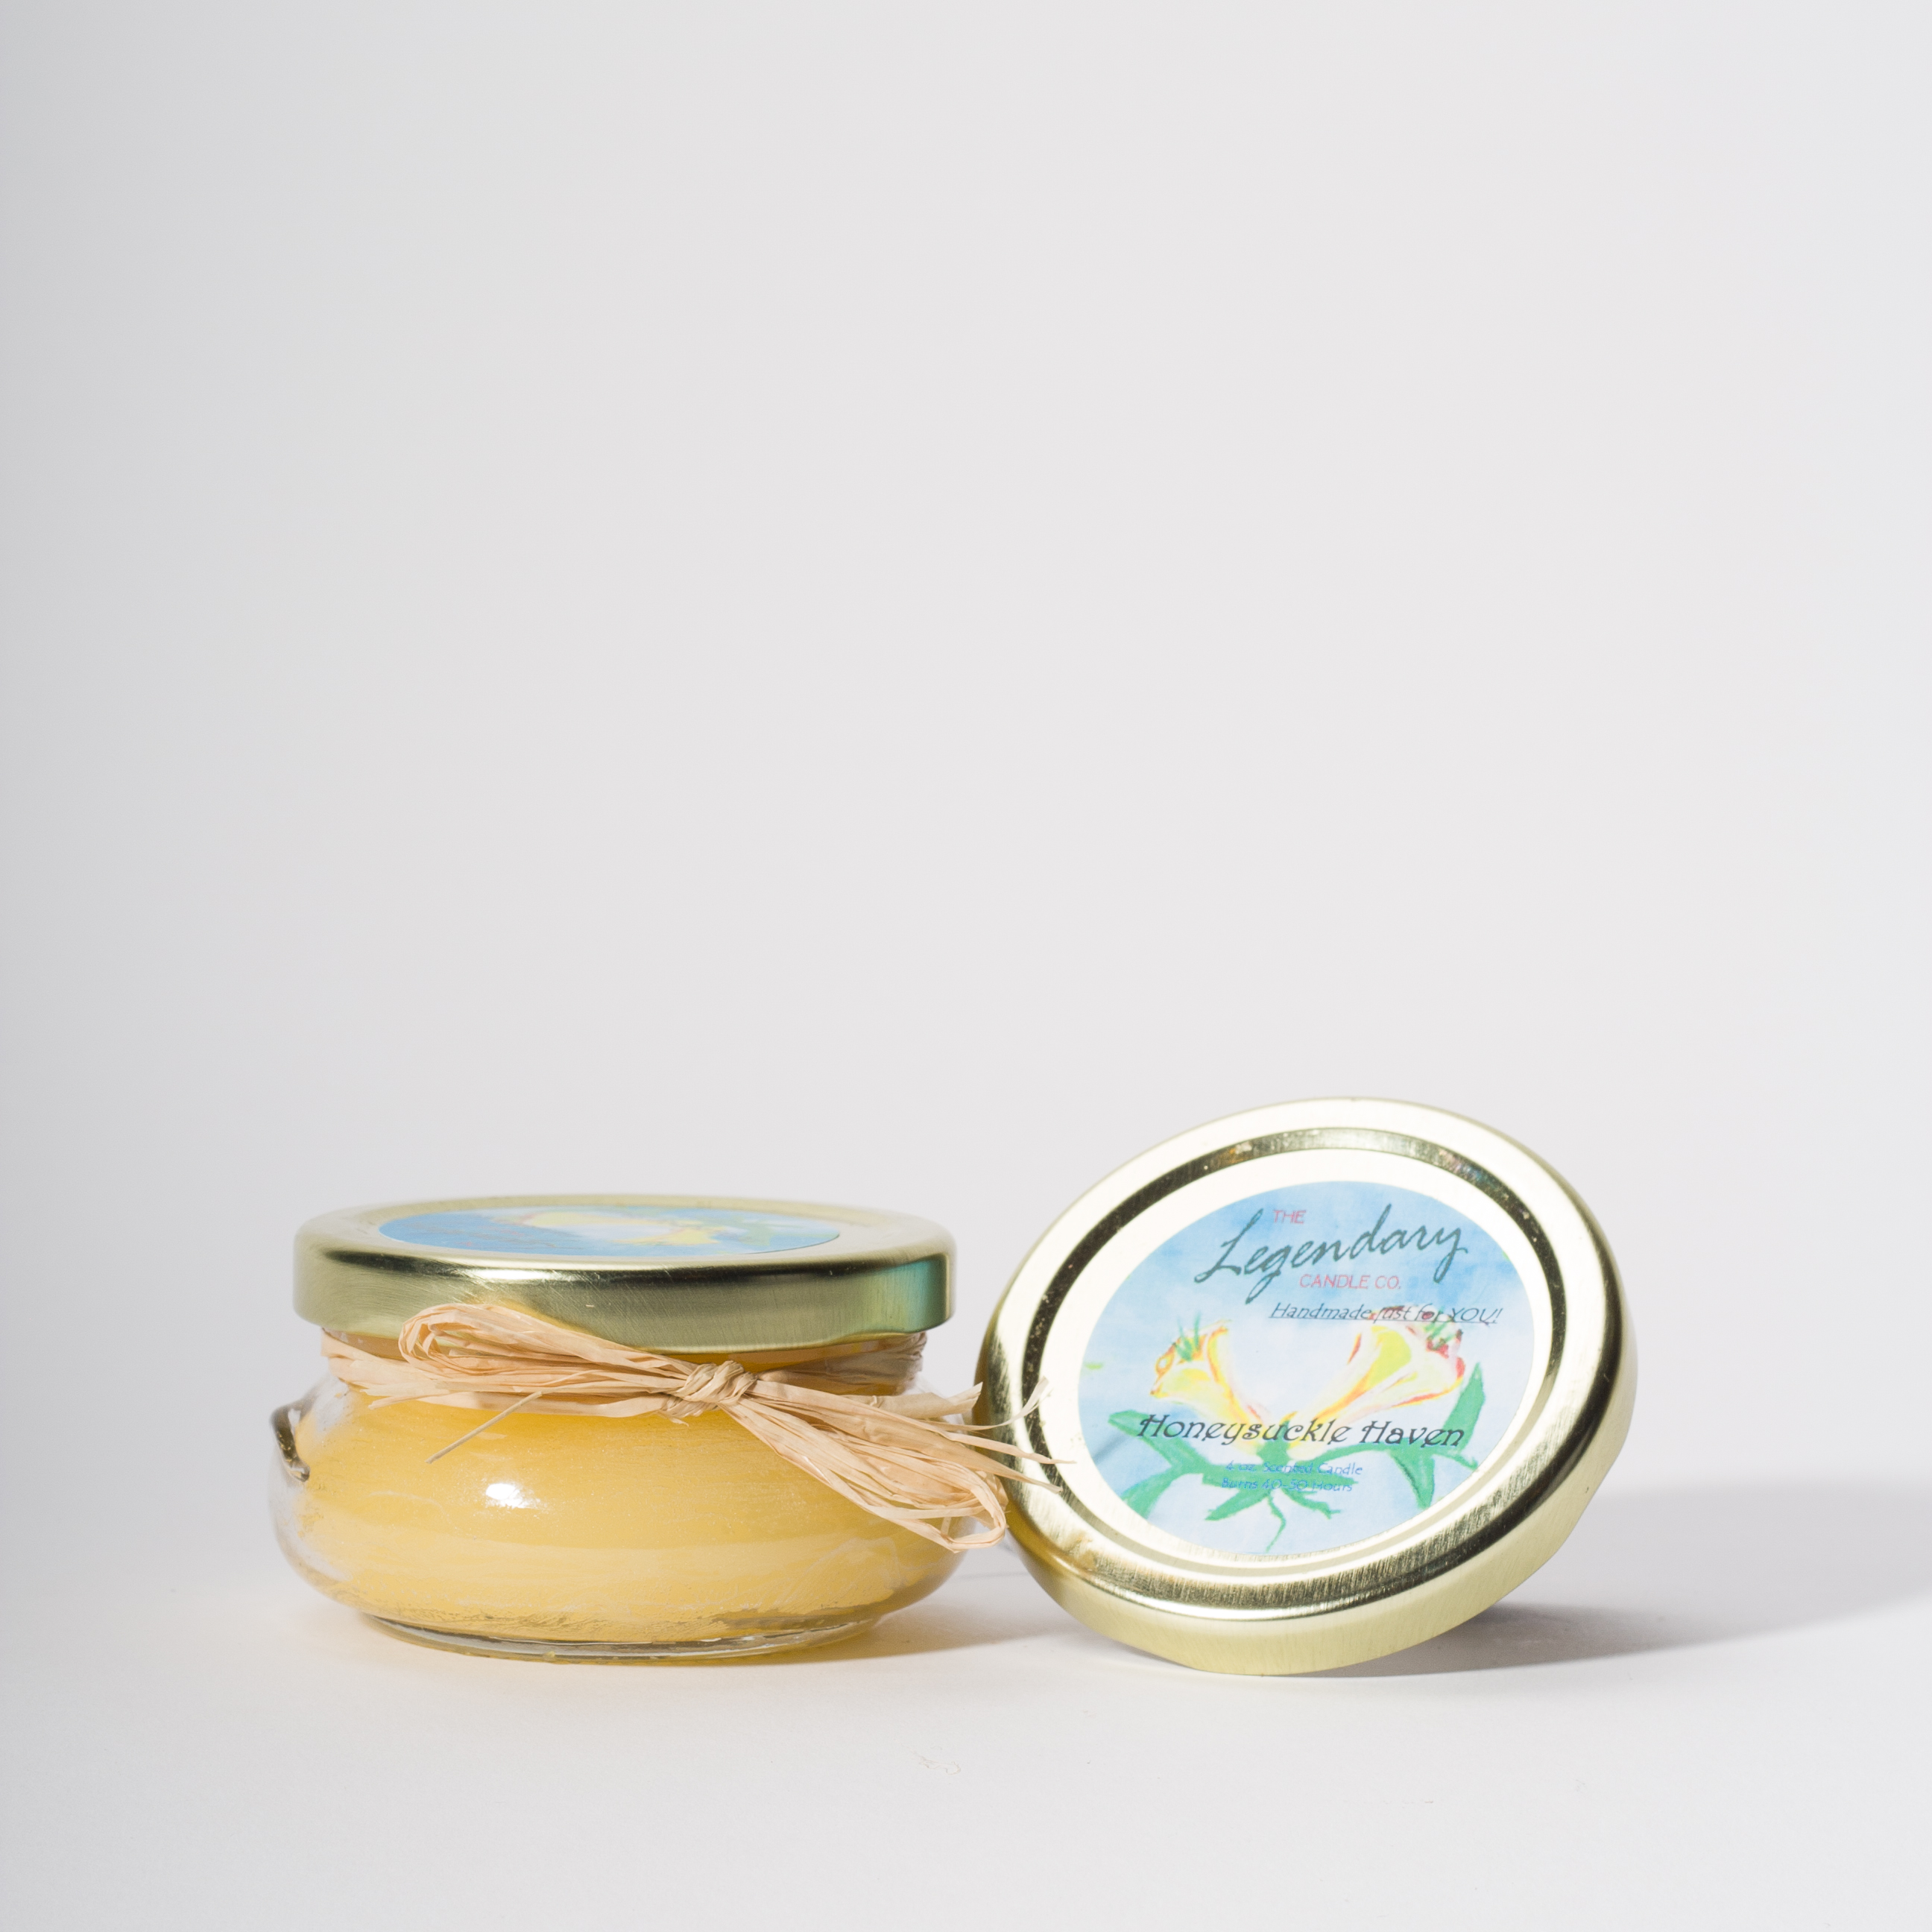 4 Ounce Honeysuckle Haven Scented Tureen Jar Candle